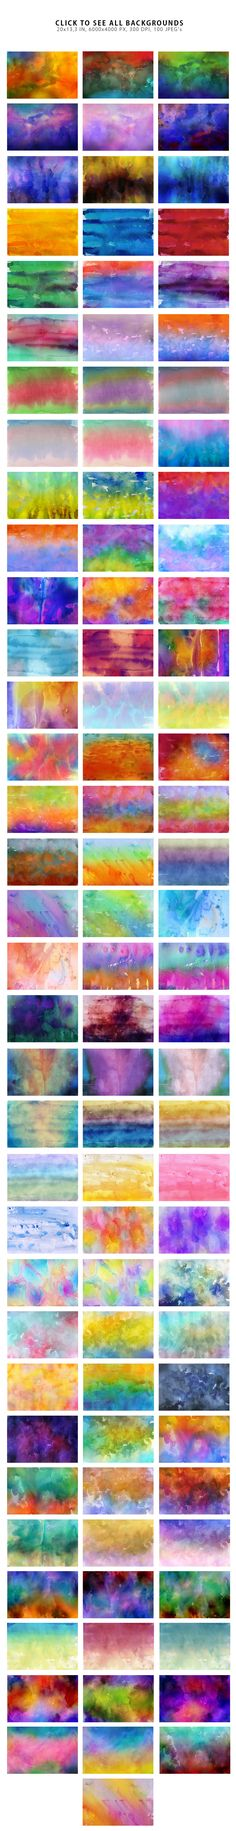 Watercolor Backgrounds 3 by ArtistMef on @creativemarket